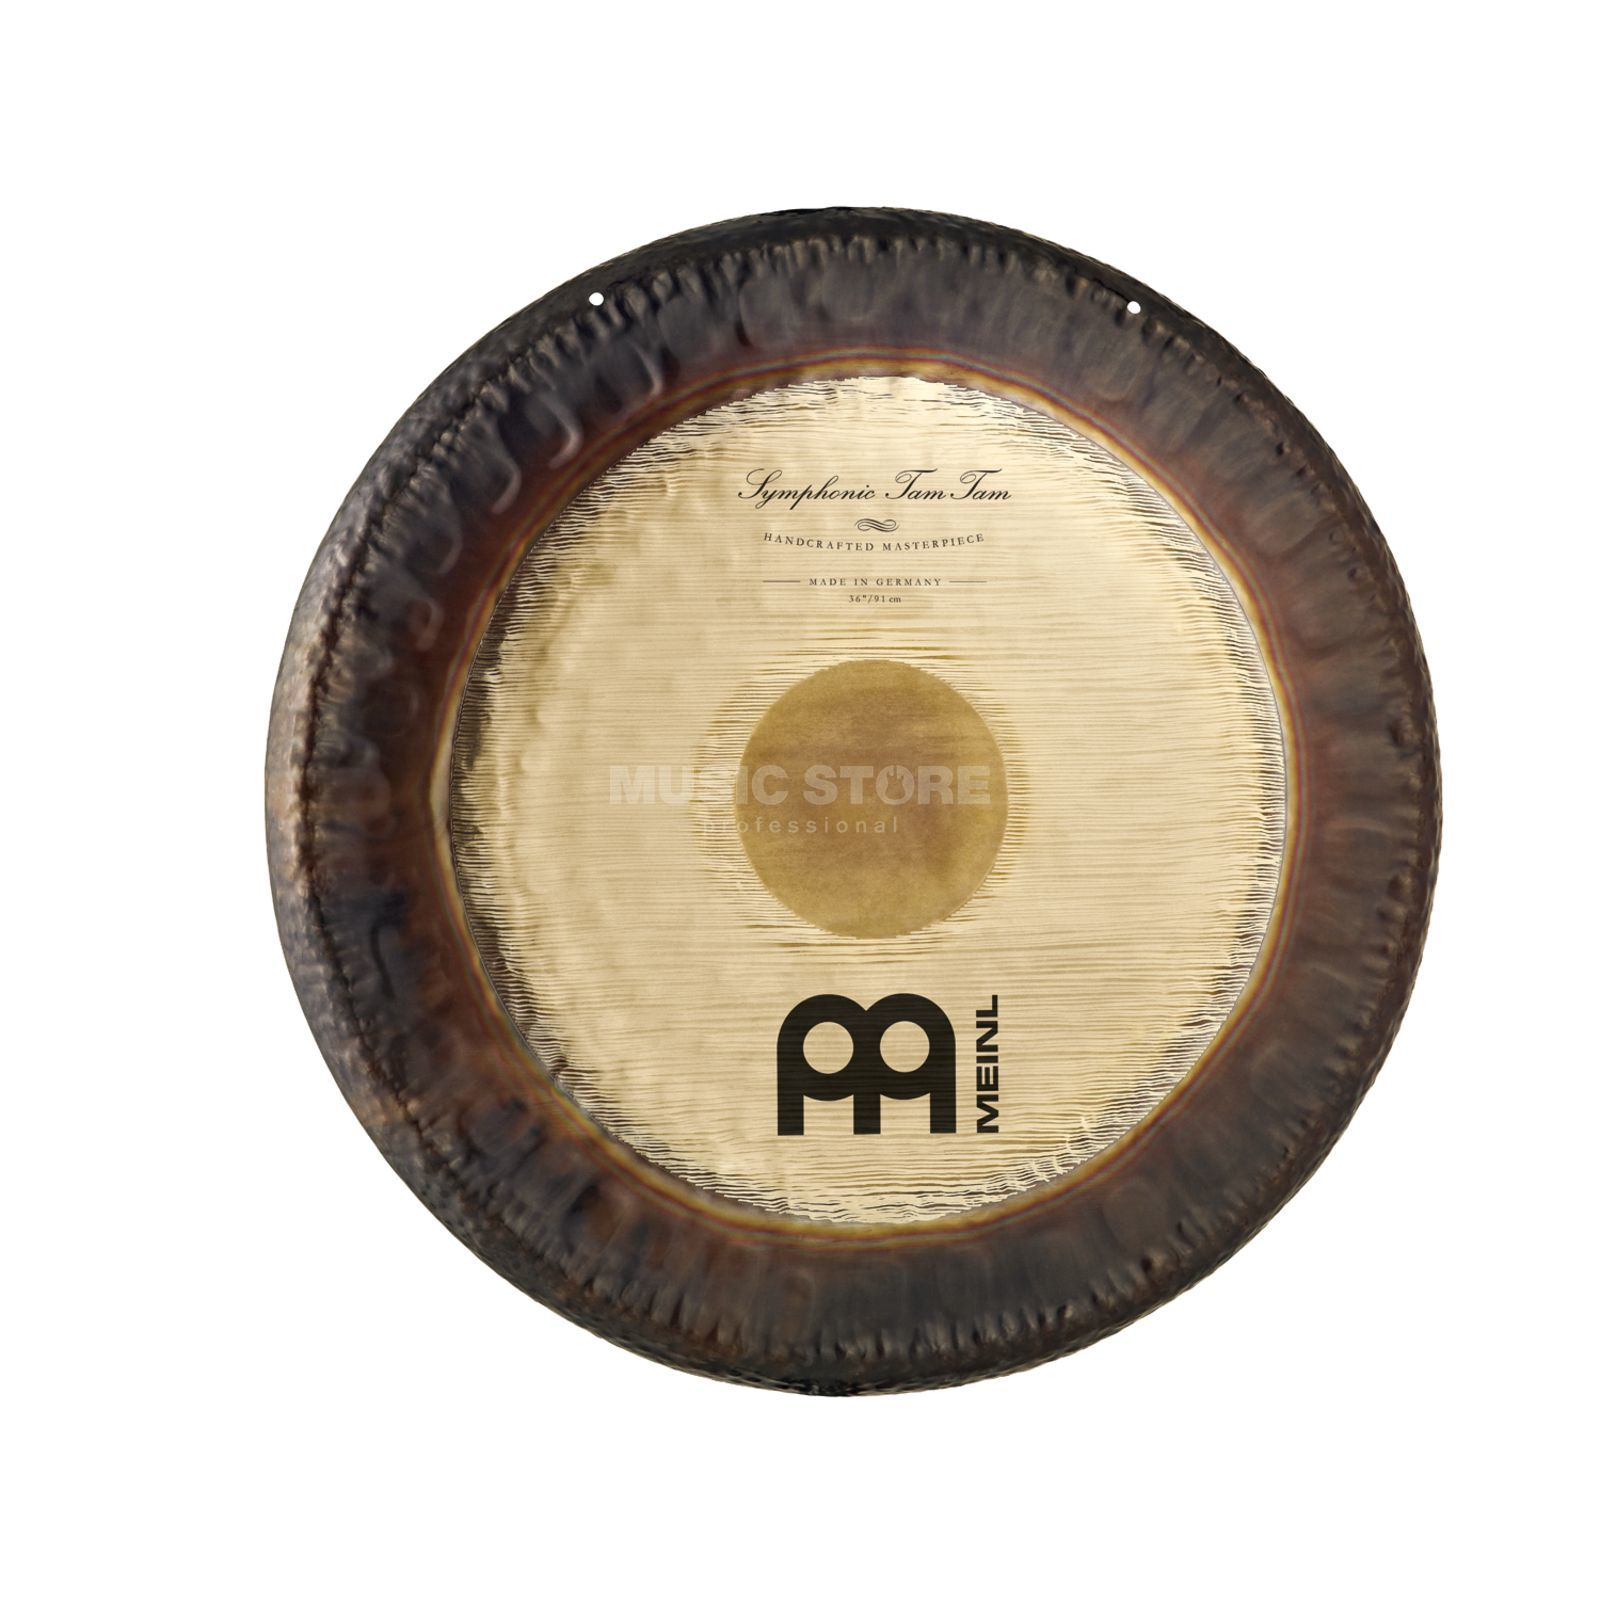 "Meinl Symphonic Tam Tam 36"" Gong, SY-TT36 Productafbeelding"